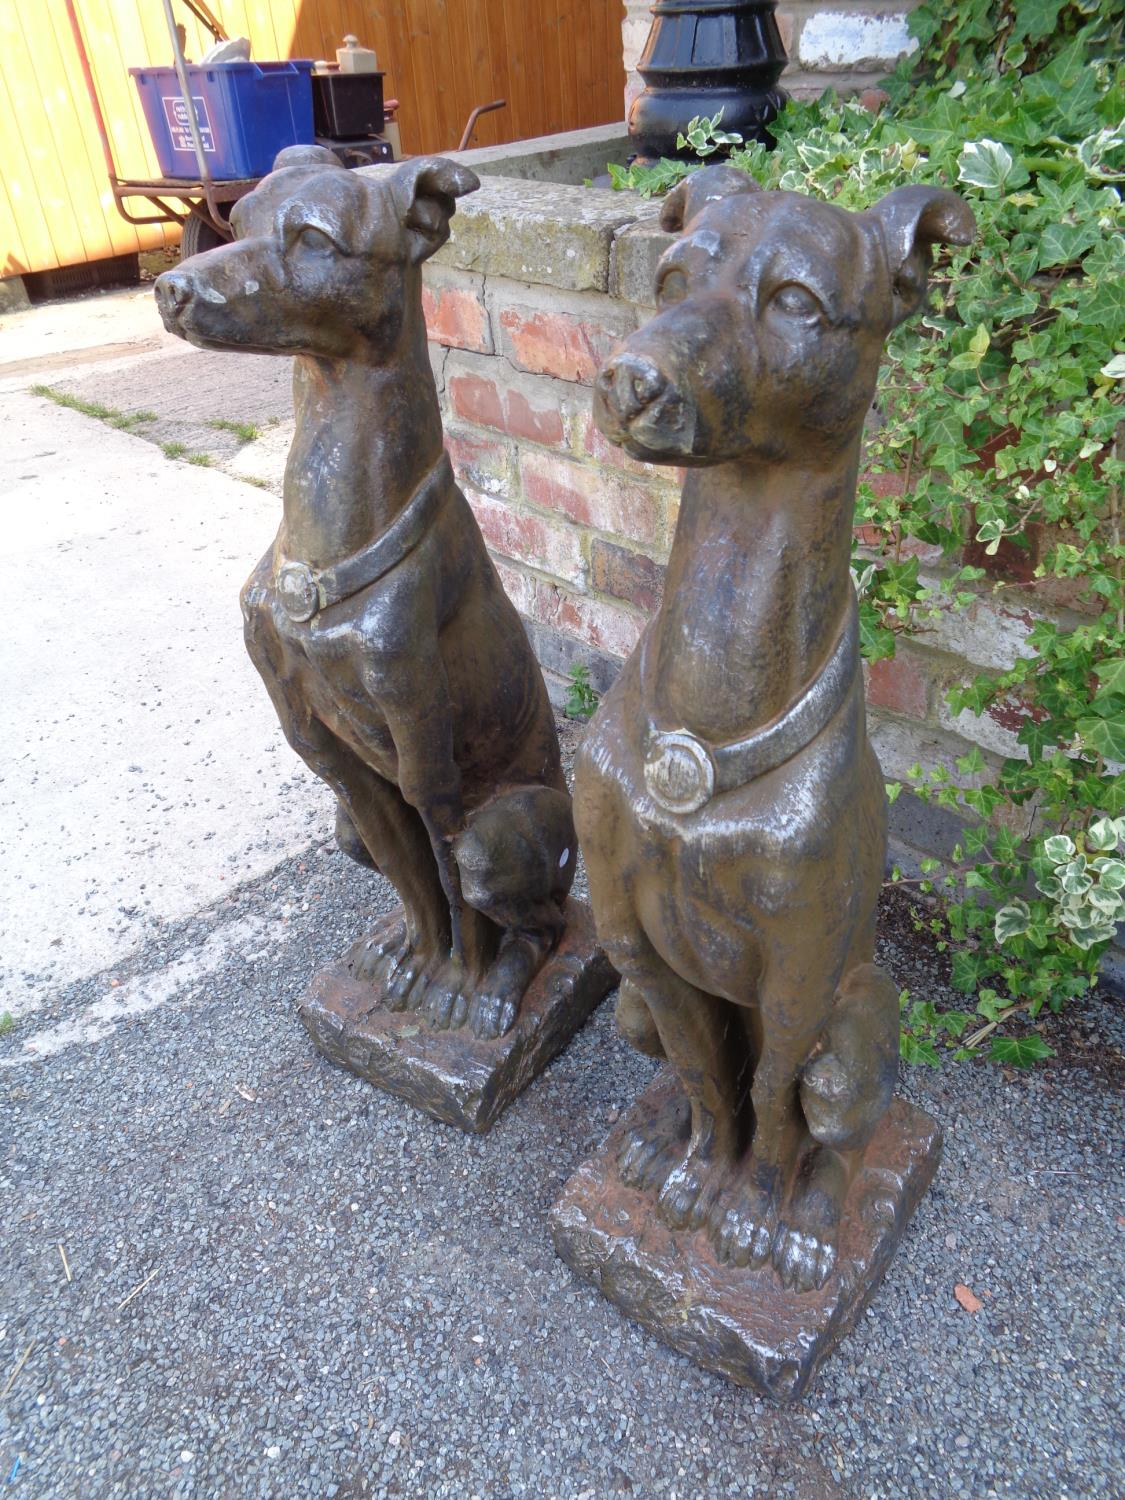 TWO LARGE RESIN TYPE DOG STATUES - Image 2 of 3